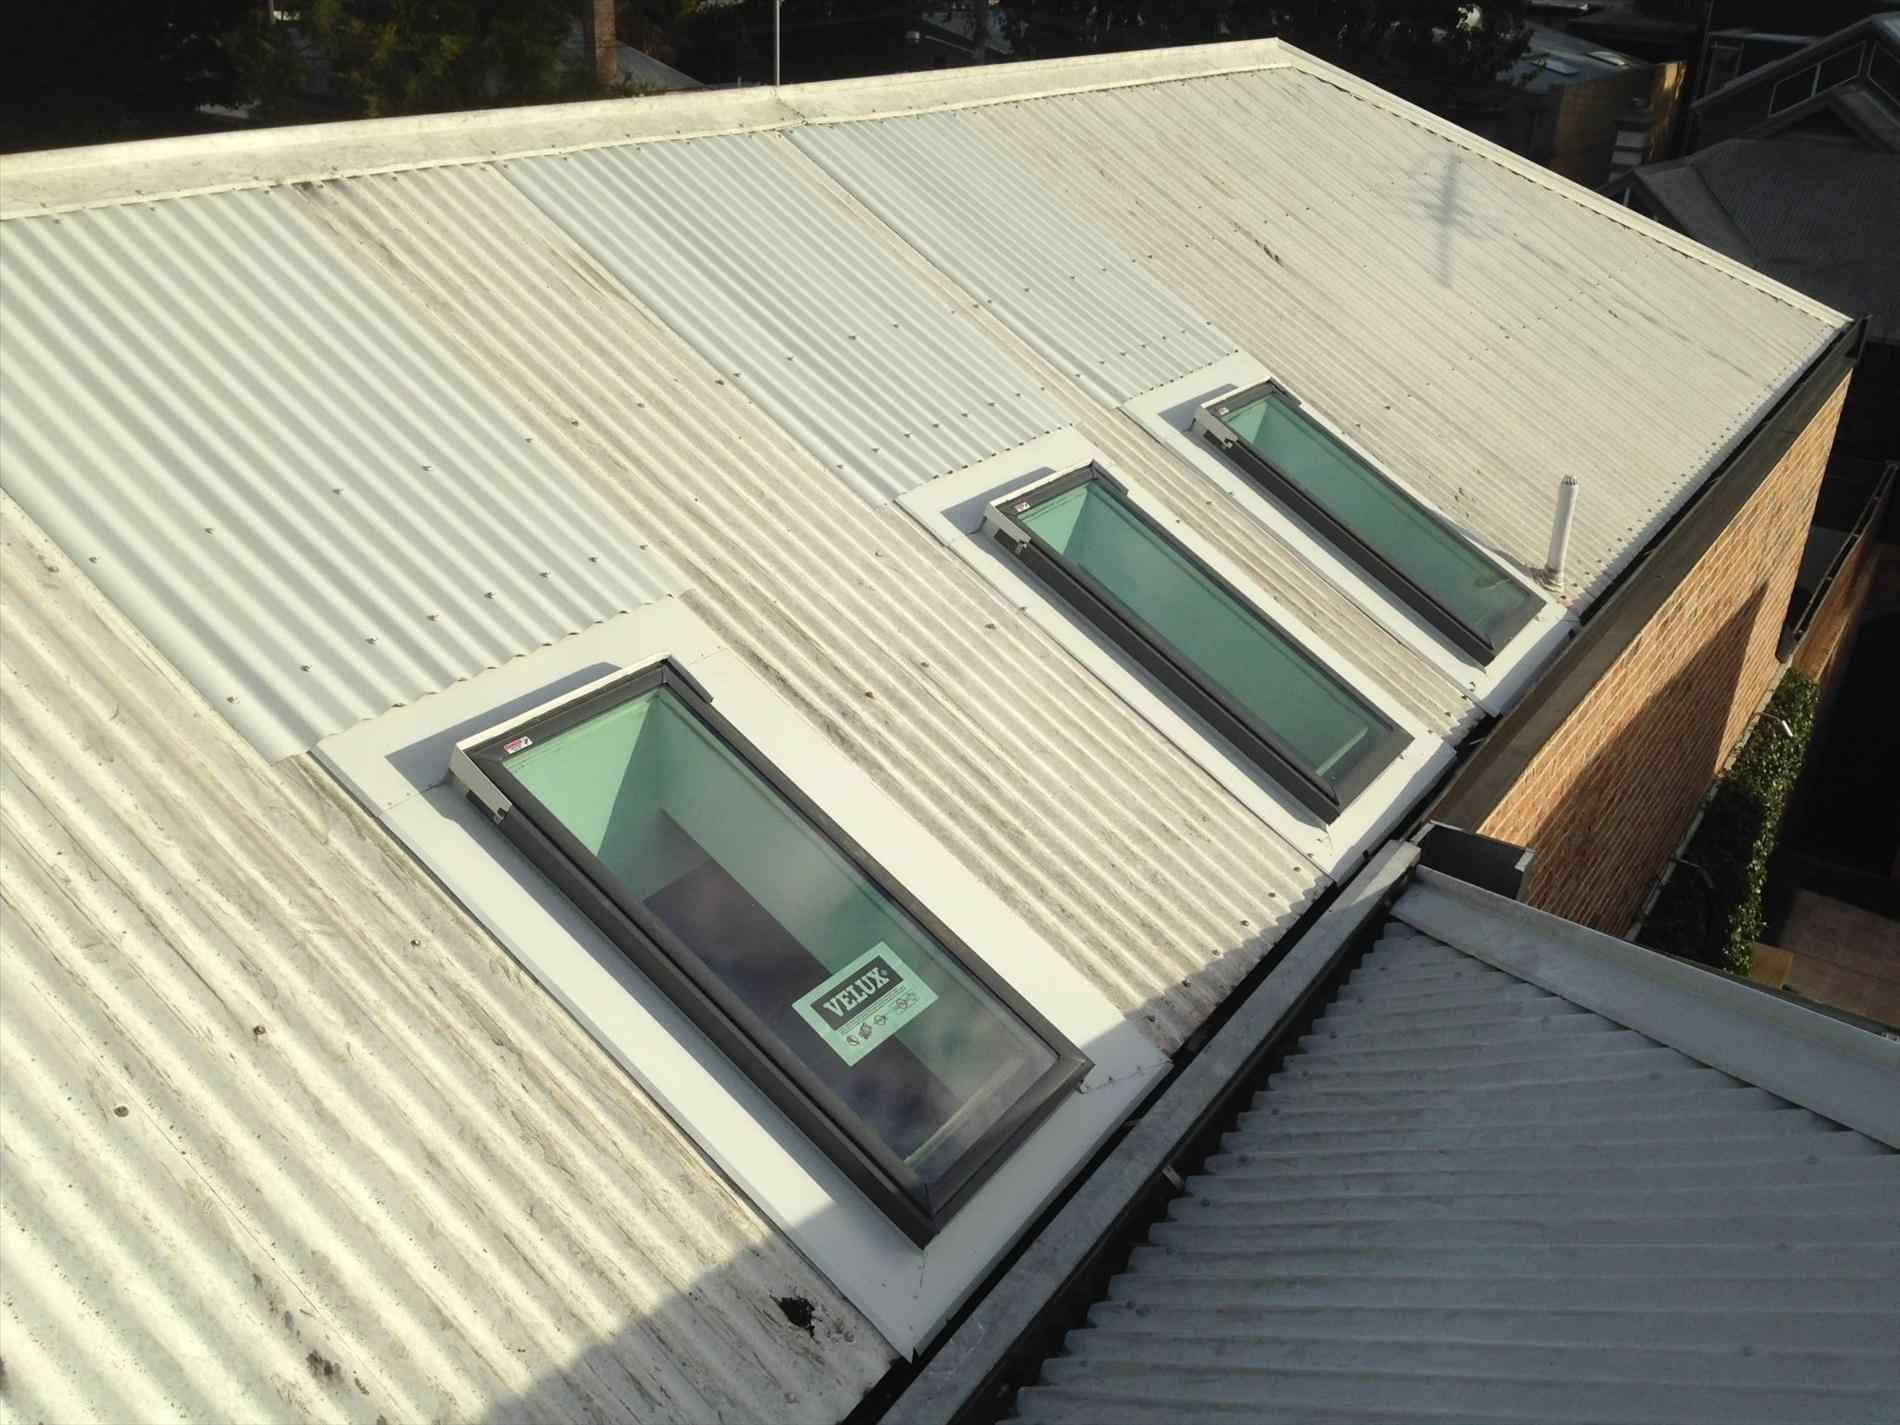 Installing A Skylight In A Metal Roof Home Roof Ideas Roof Skylight Fibreglass Roof Skylight Installation